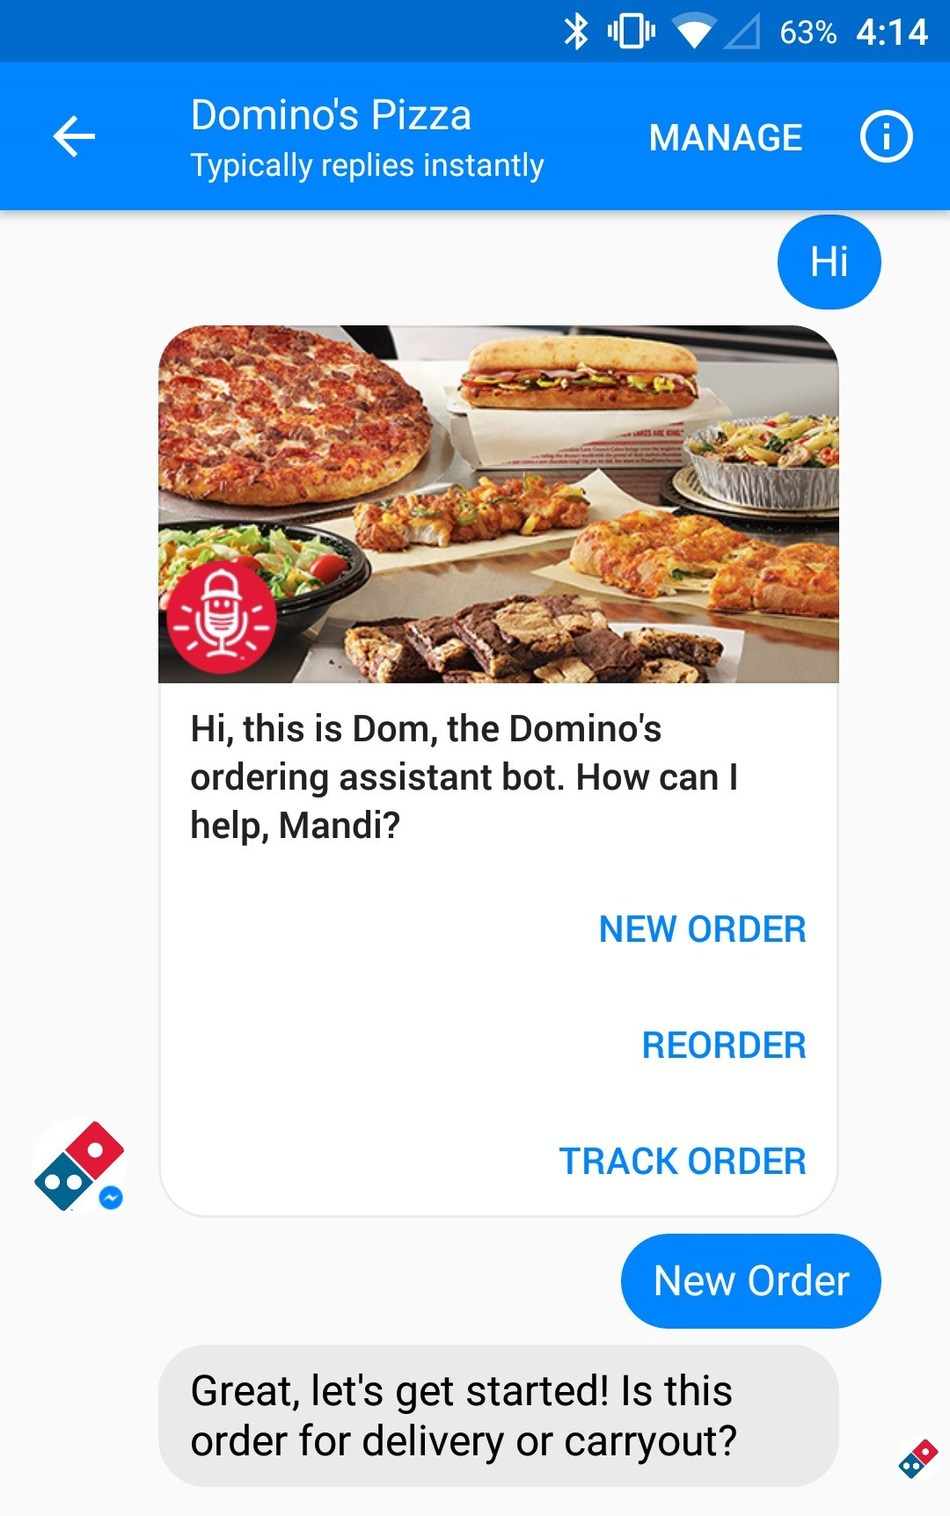 Customers can now place any order for any menu item they'd like on Facebook Messenger, just in time for Feb. 5 - one of Domino's busiest delivery days of the year. Domino's is the first national pizza chain to have full ordering capabilities on Messenger.